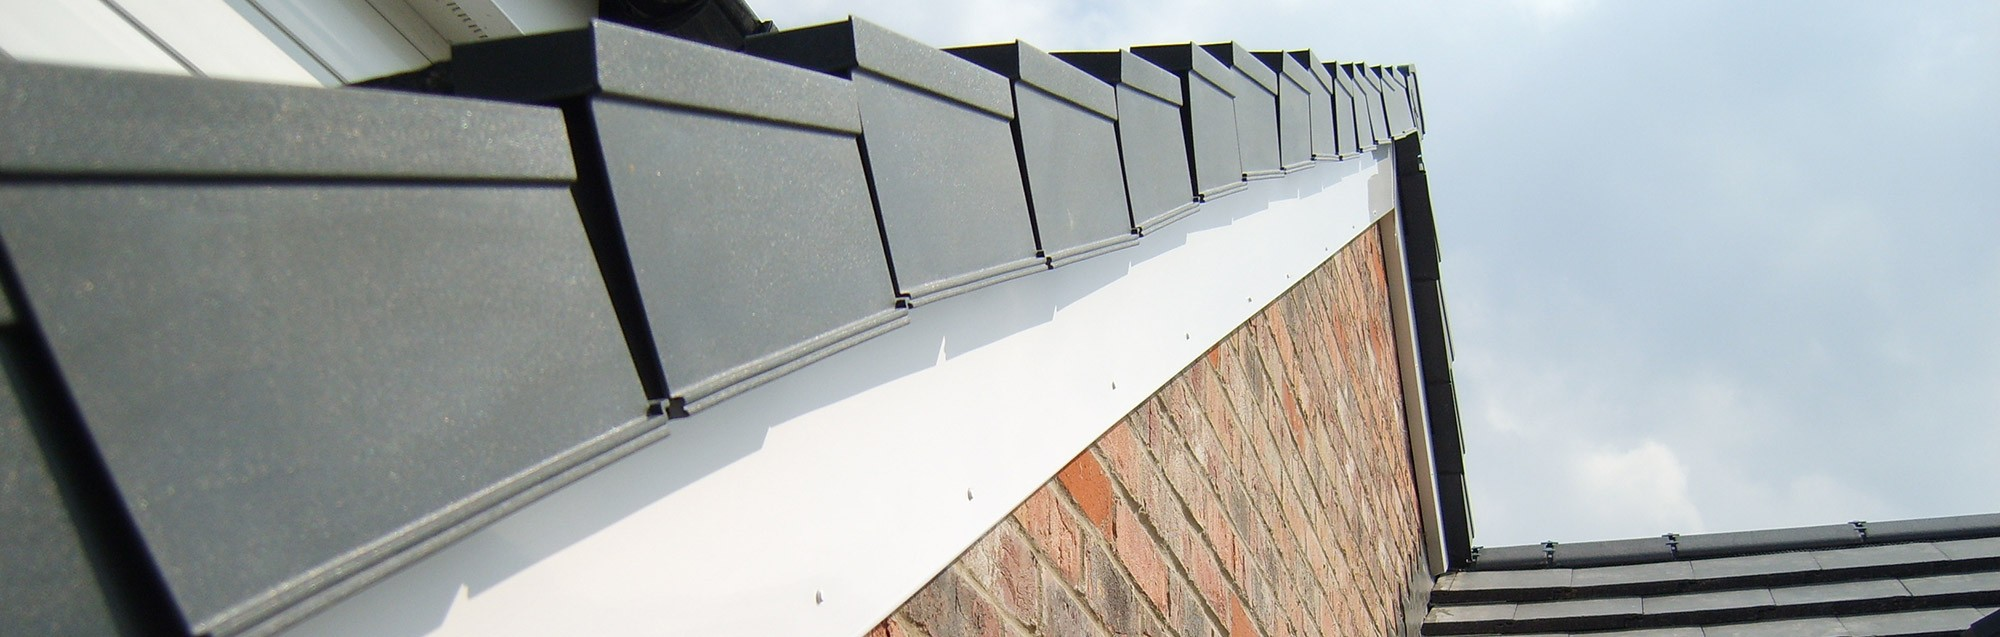 Soffits and facisas